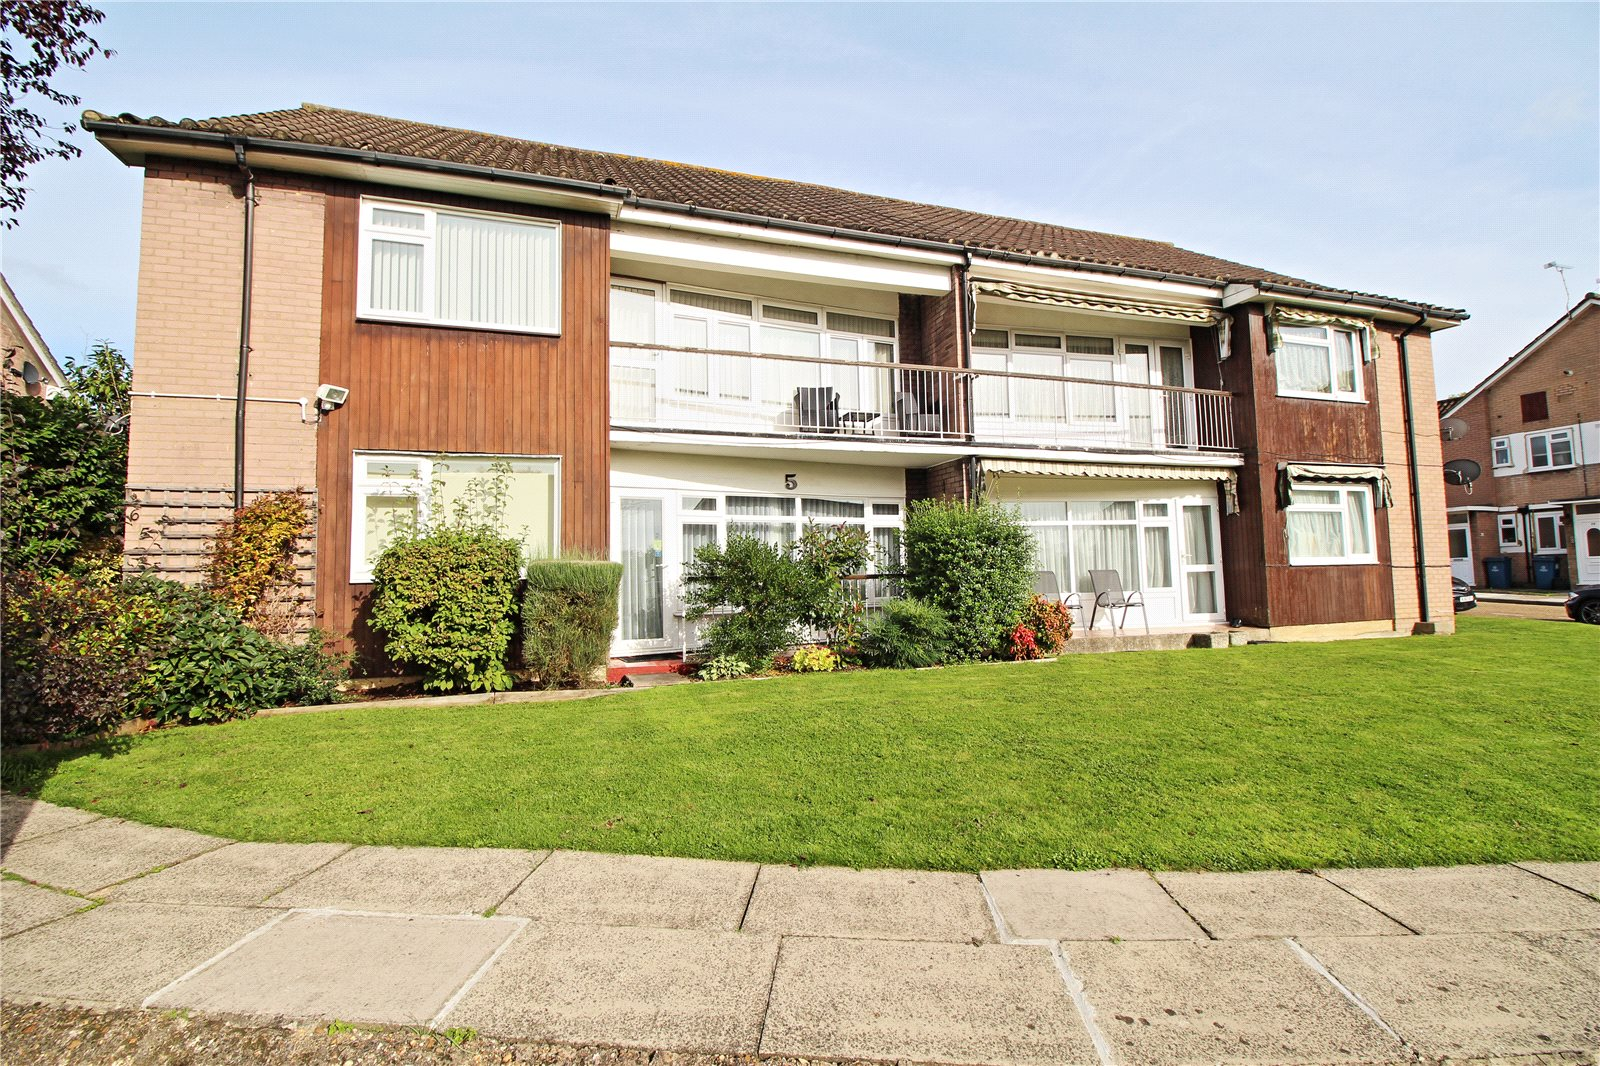 2 Bedrooms Maisonette Flat for sale in Merryfield Gardens Stanmore HA7